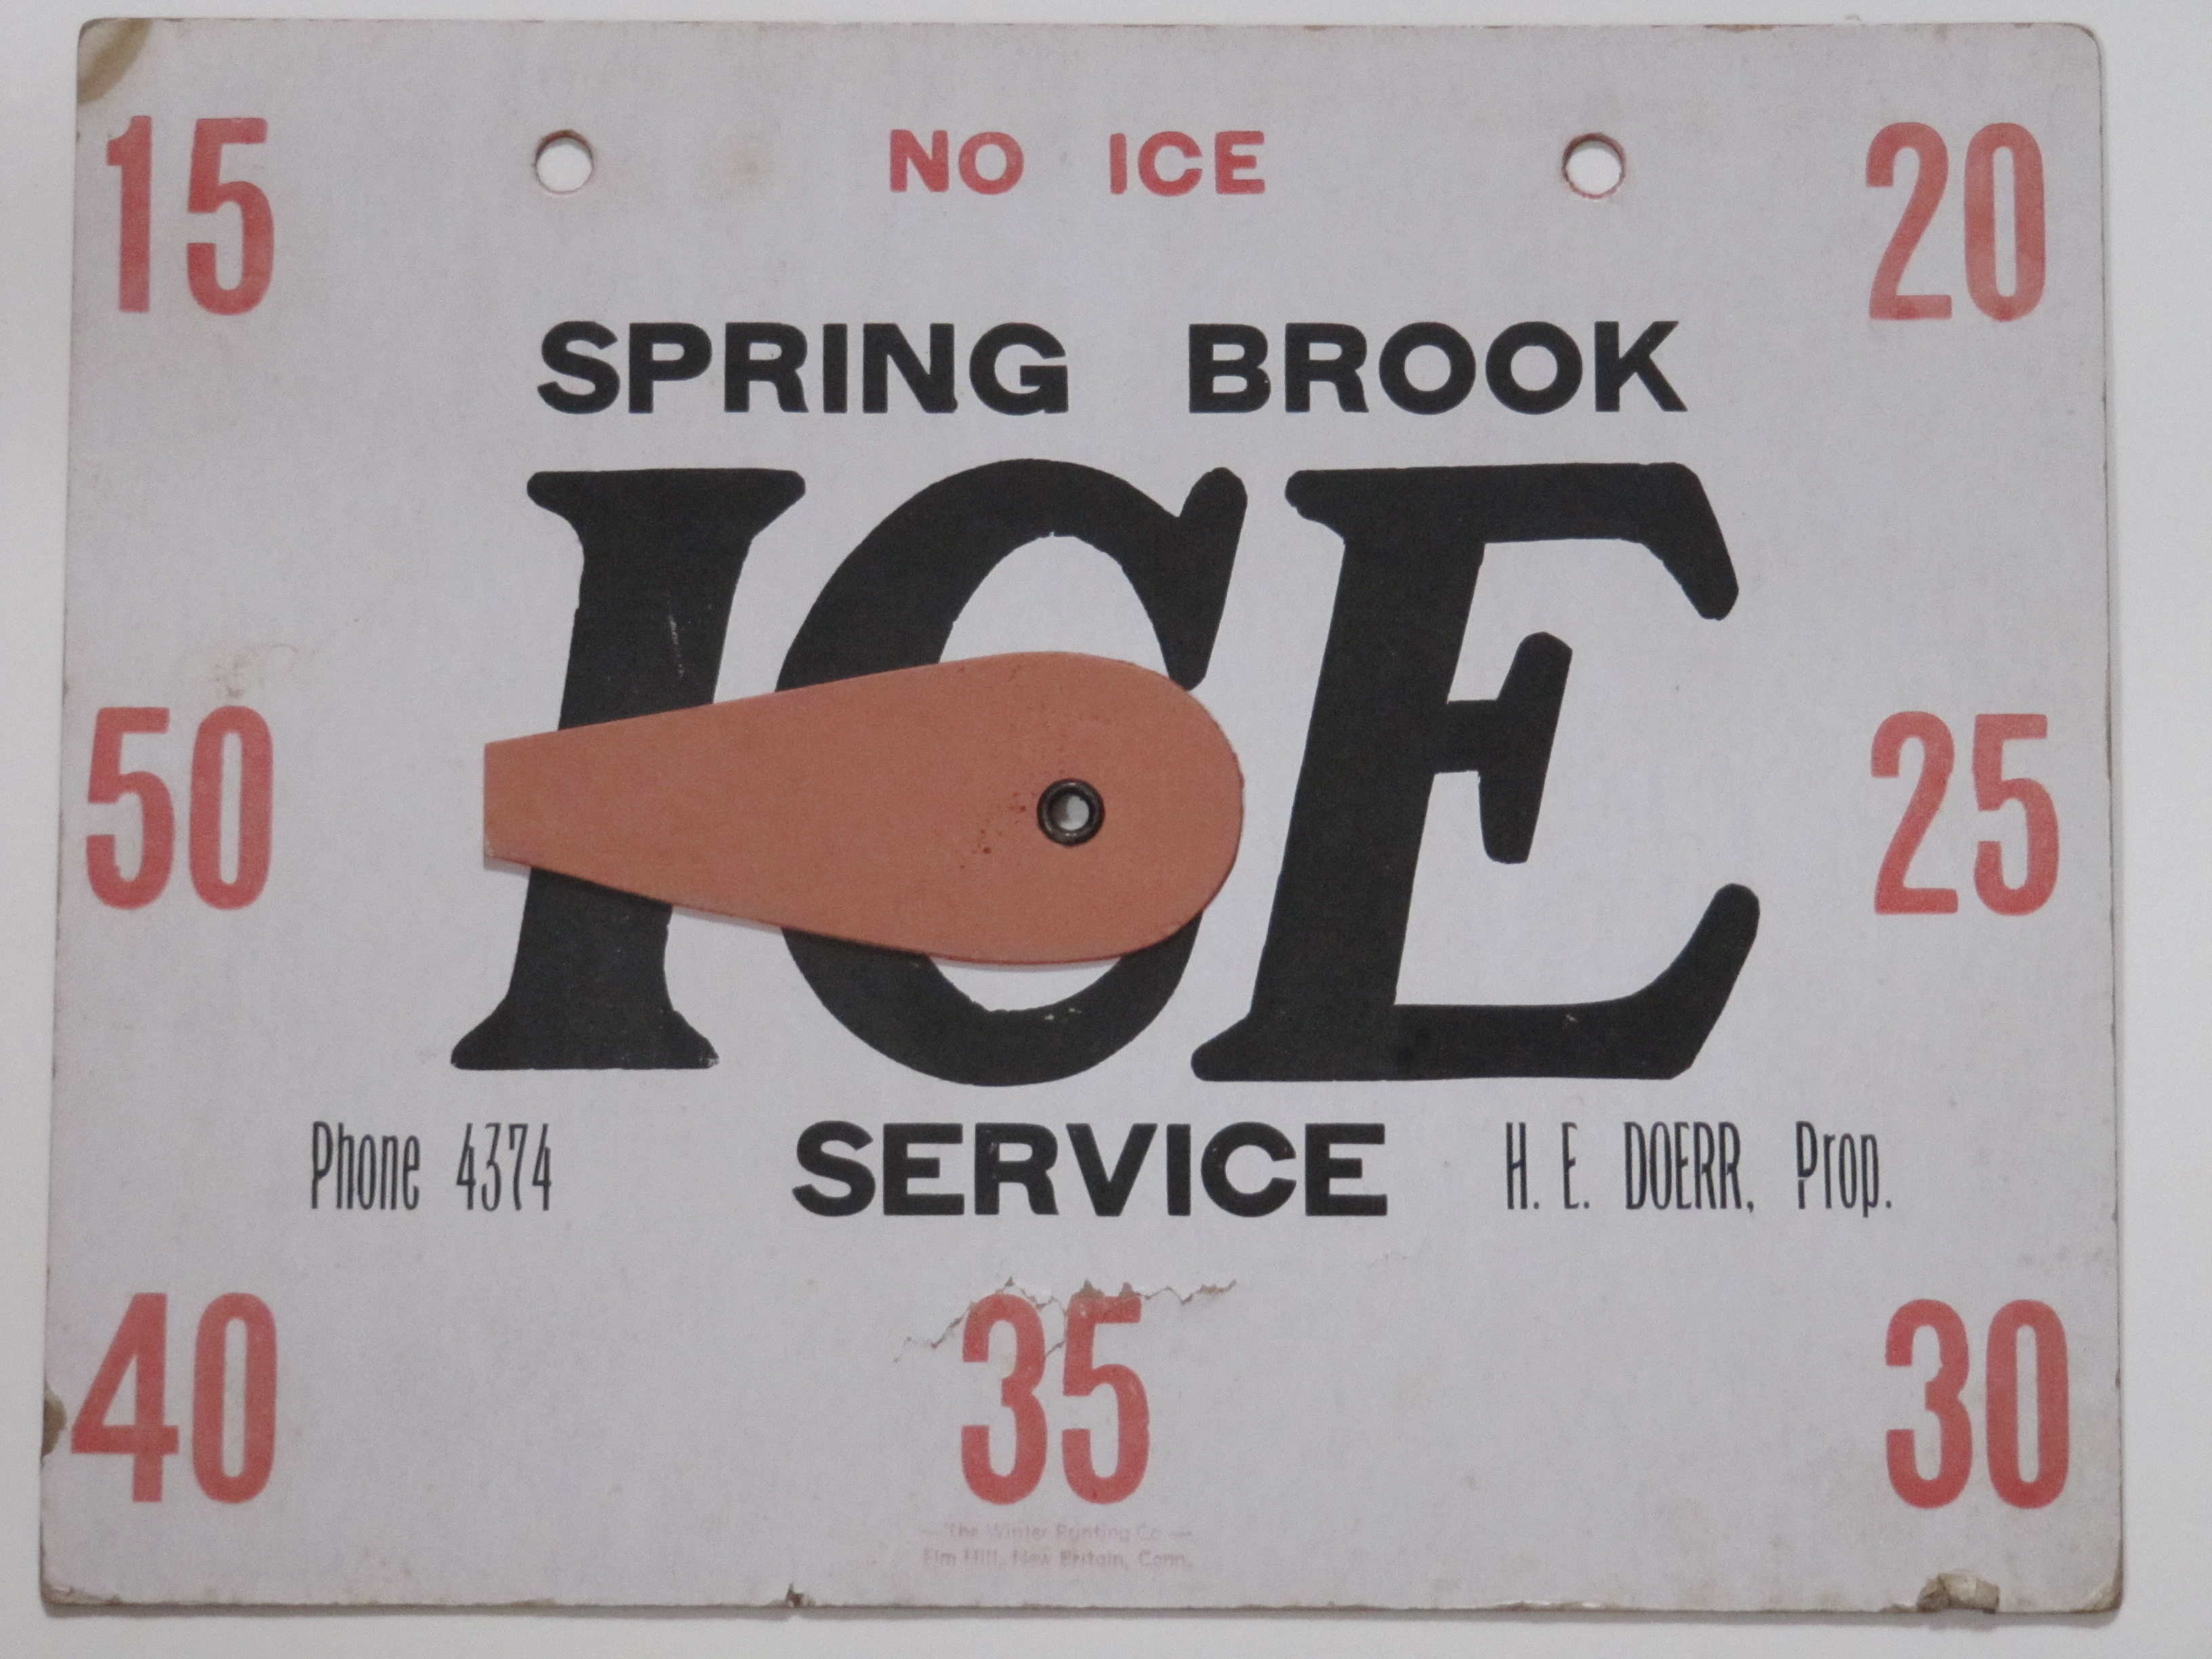 Spring Brook Ice Service